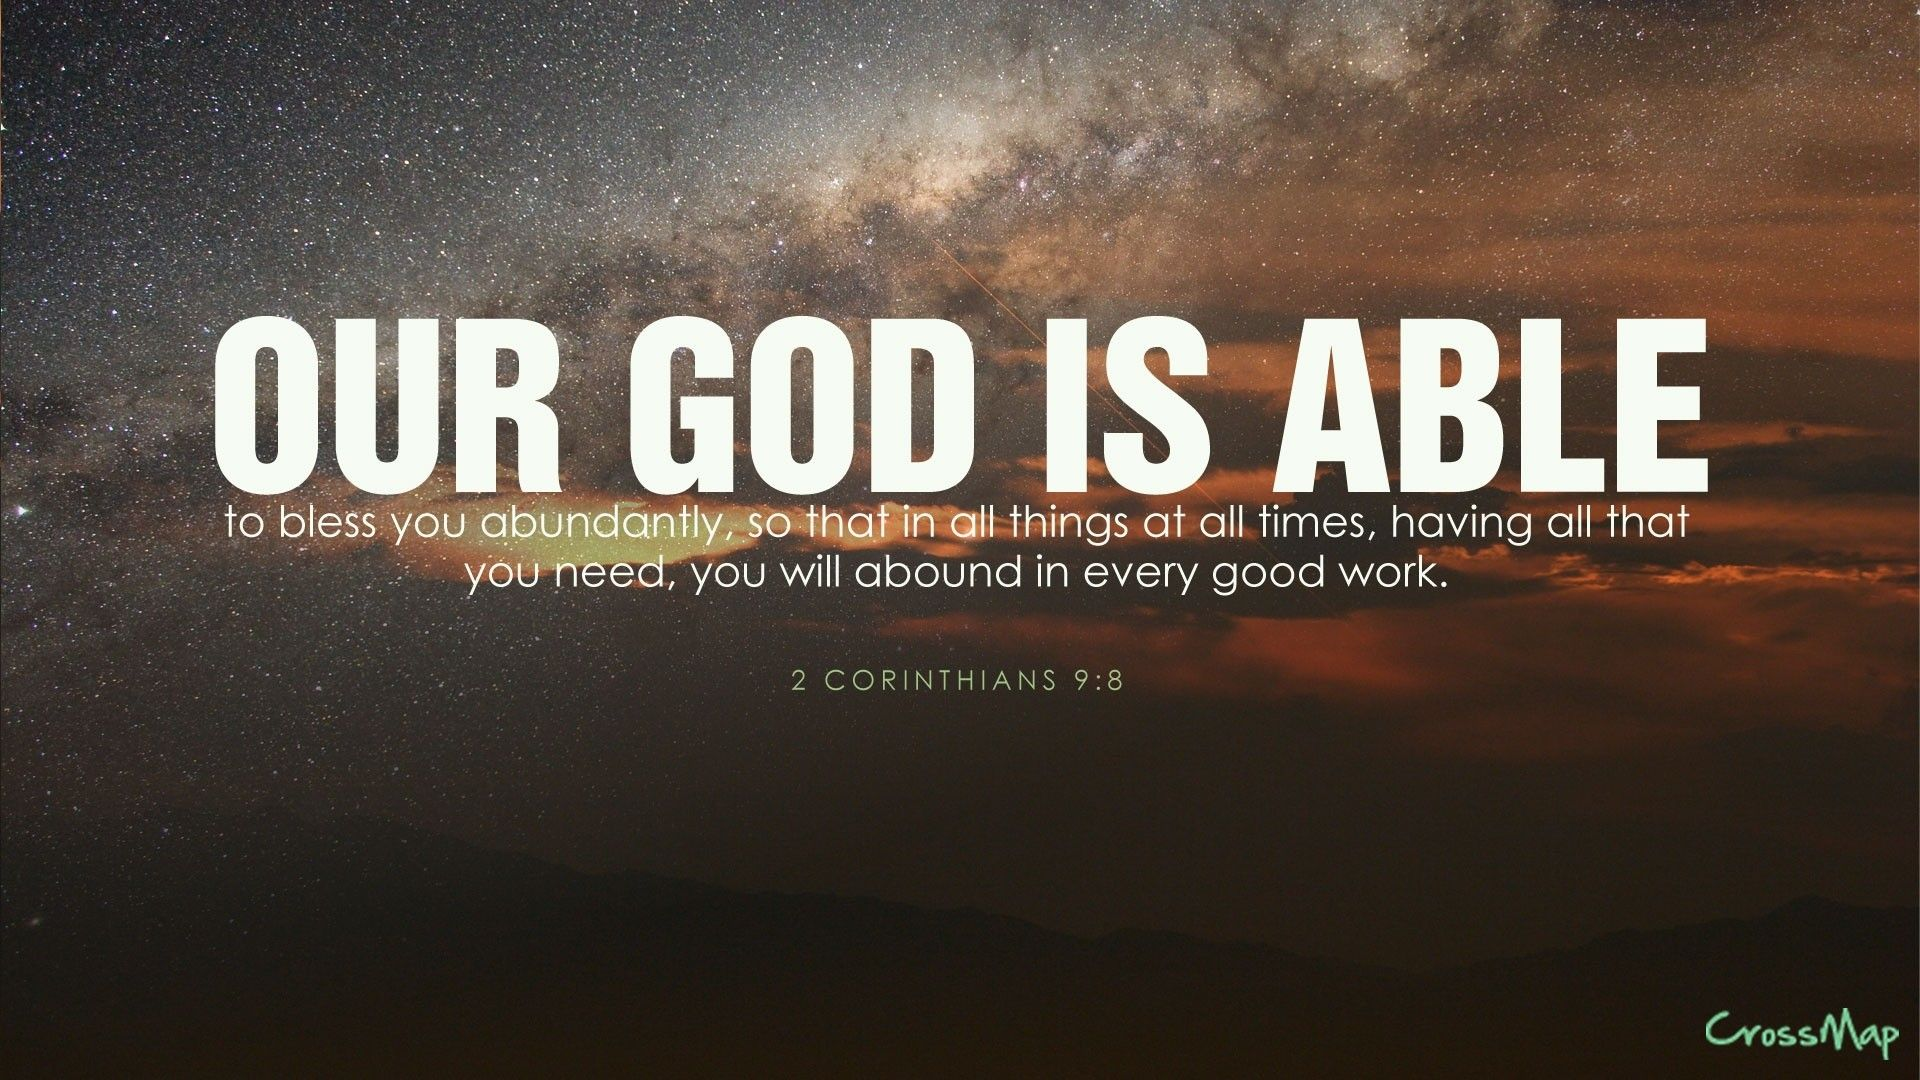 31 Hd Christian Wallpapers 1920x1080 2k Luxury Photos In 2020 Christian Wallpaper Christian Wallpaper Hd Christian Quotes Hd